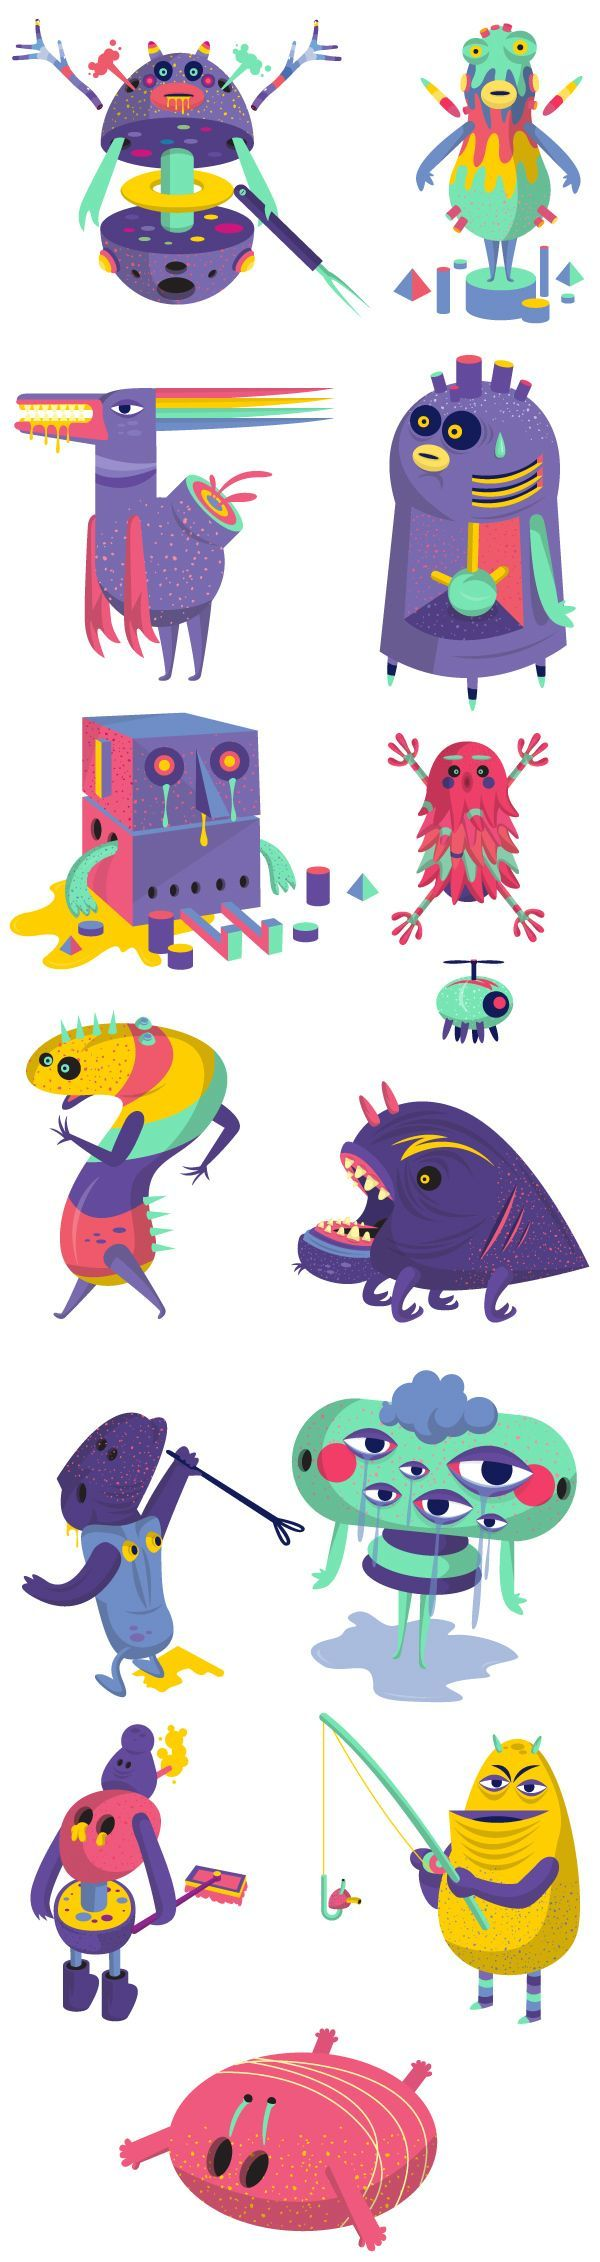 Offf Barcelona 2013 by David Pocull, via Behance: